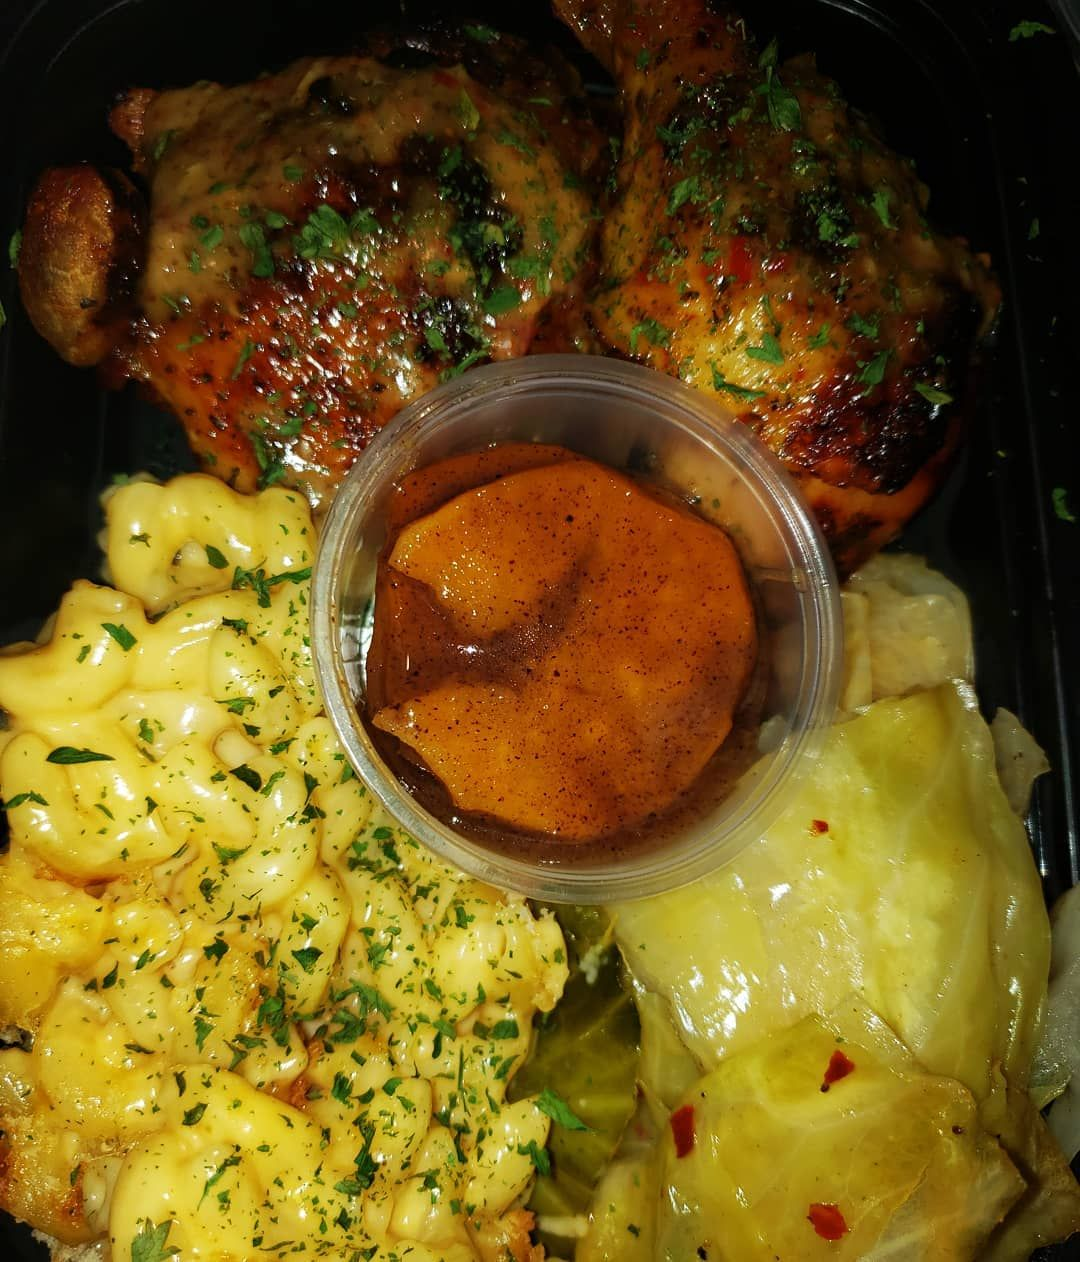 Lunch Happened Bakedchicken Sauced Cabbage Macncheese Candiedyams Andiedyams Delivered Healthy Breakfast Recipes Best Breakfast Recipes Healthy Nutrients